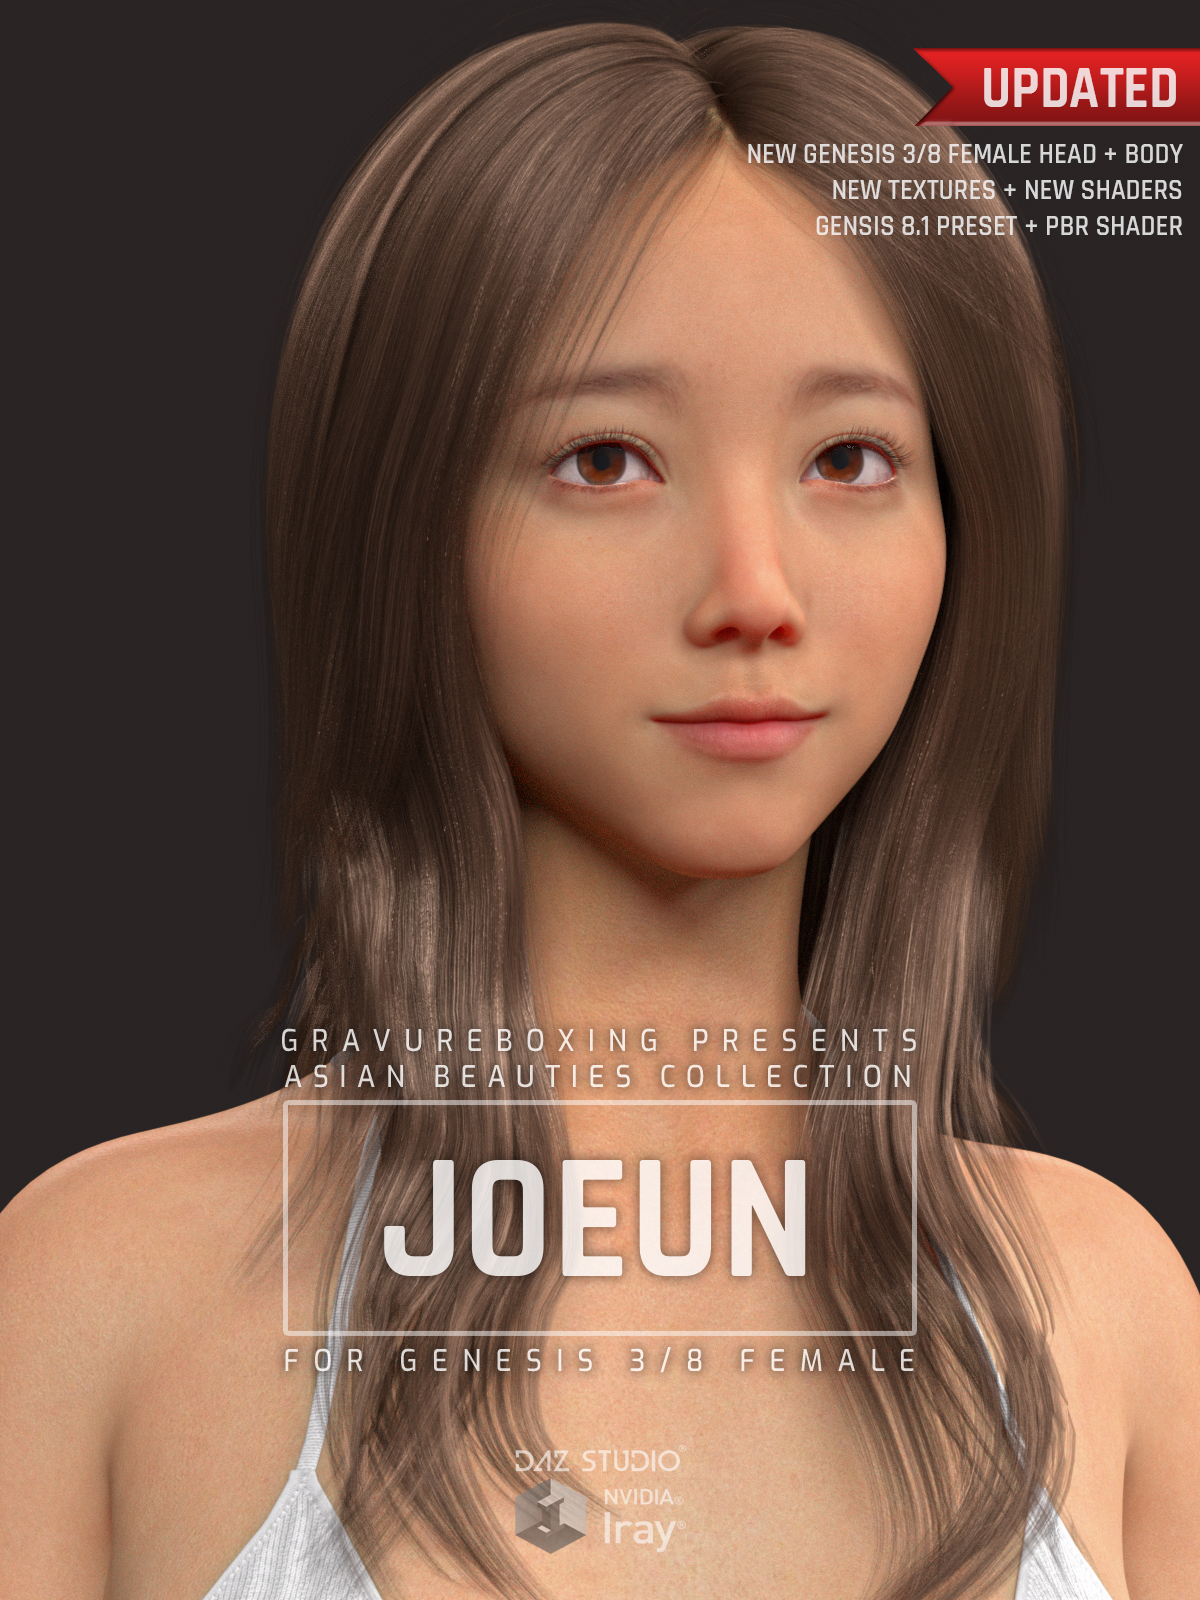 Joeun G3G8F for Genesis 3 and Genesis 8 Female by gravureboxing